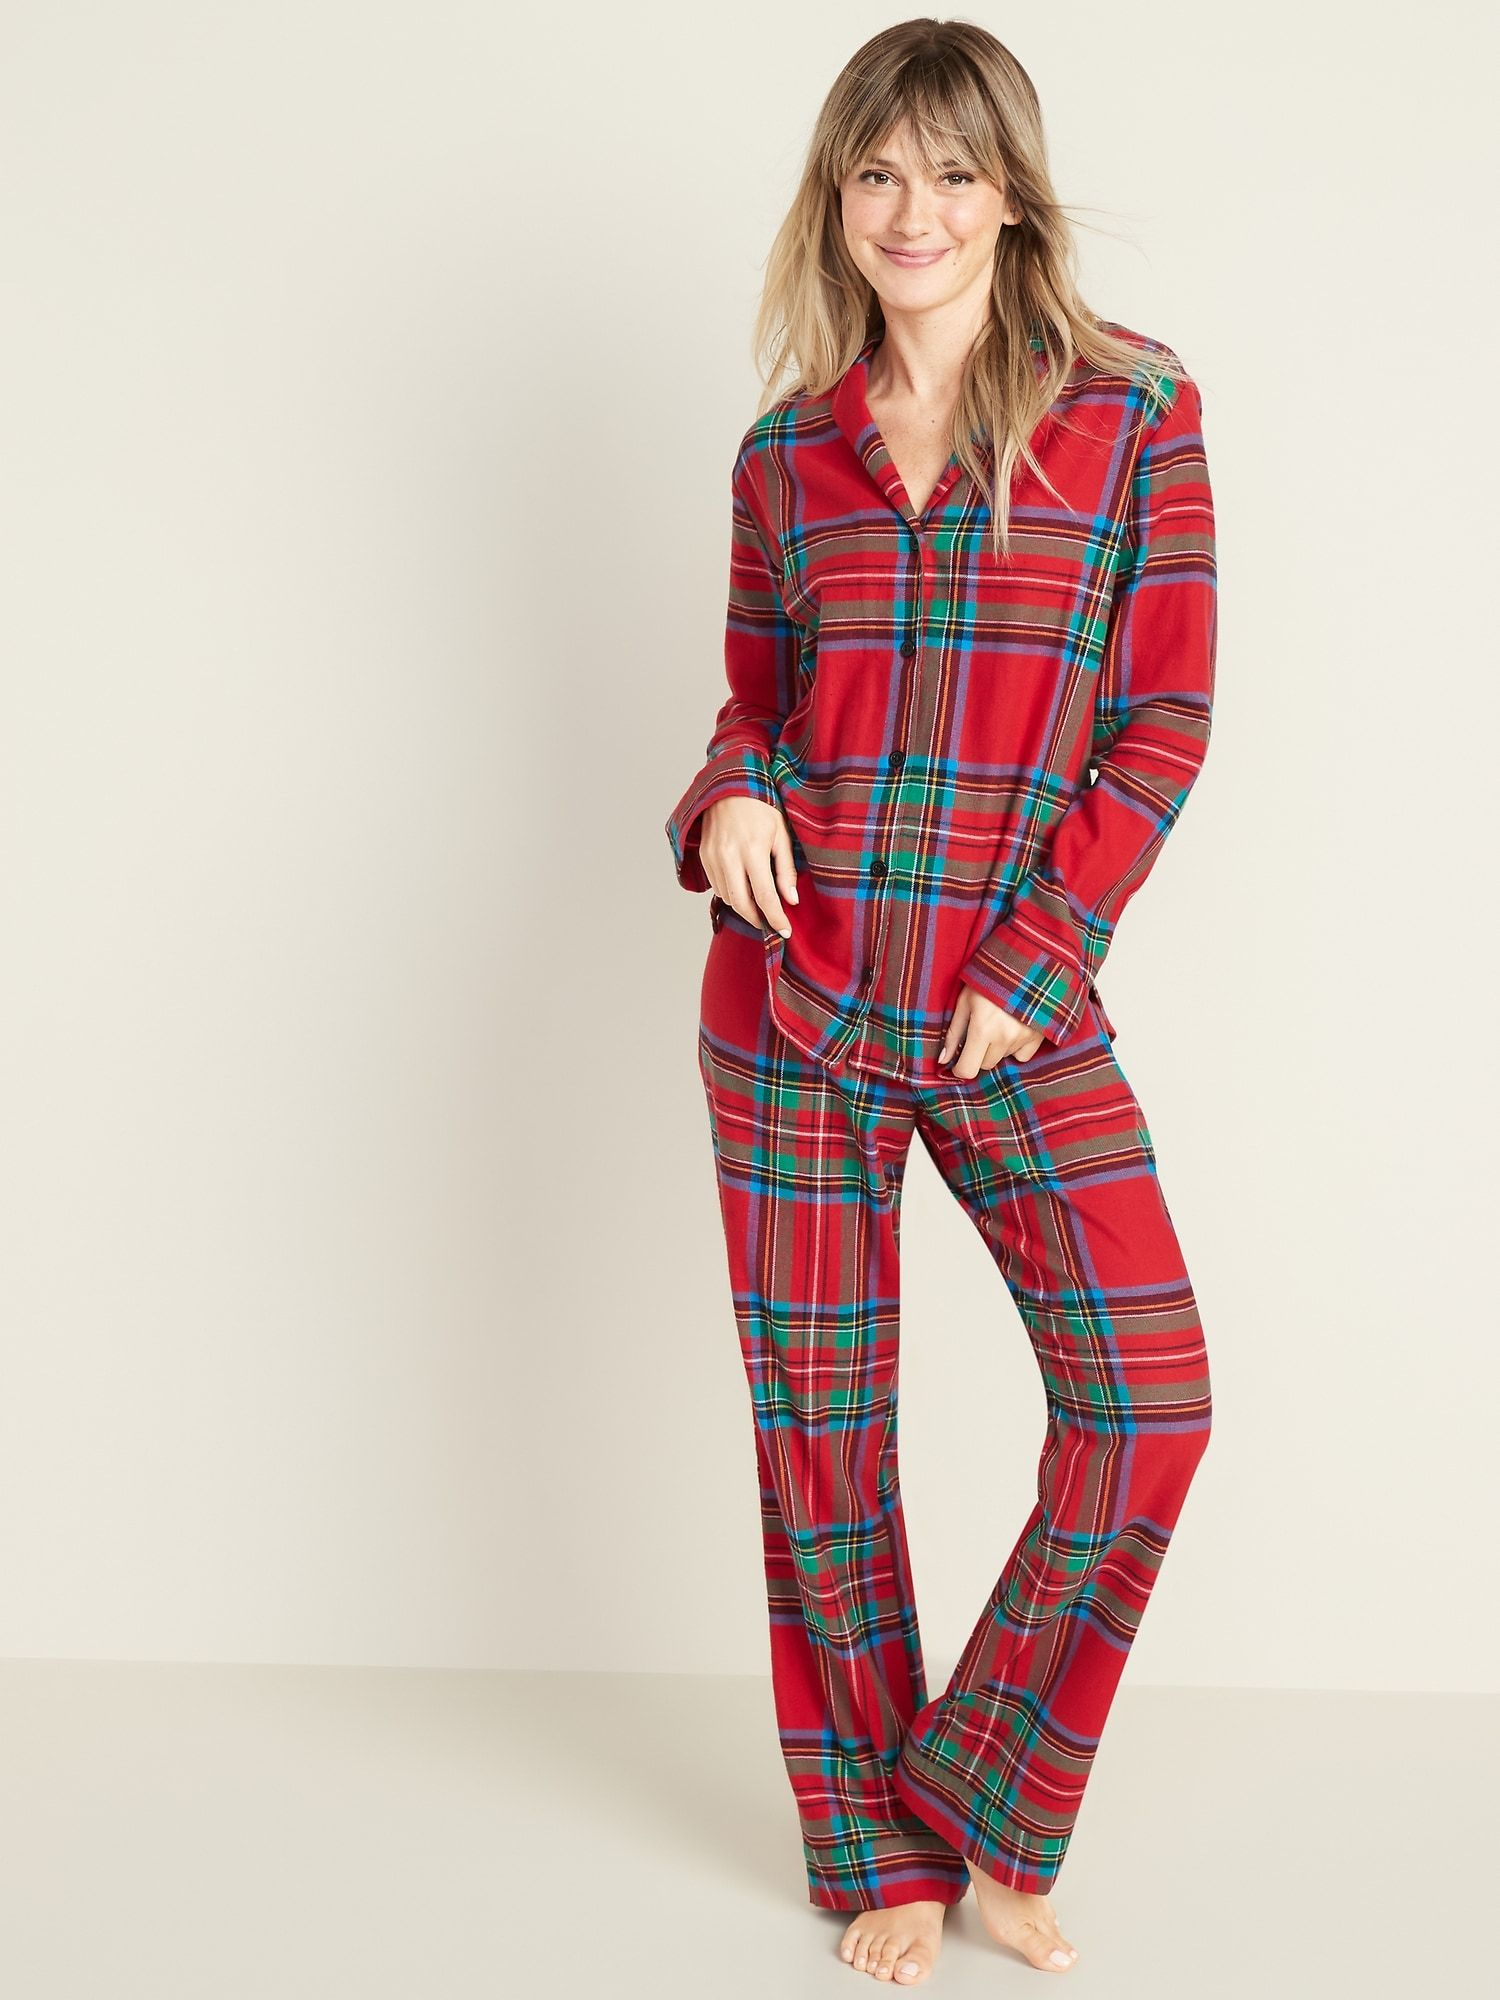 Patterned Flannel Pajama Set For Women in 2020 Flannel